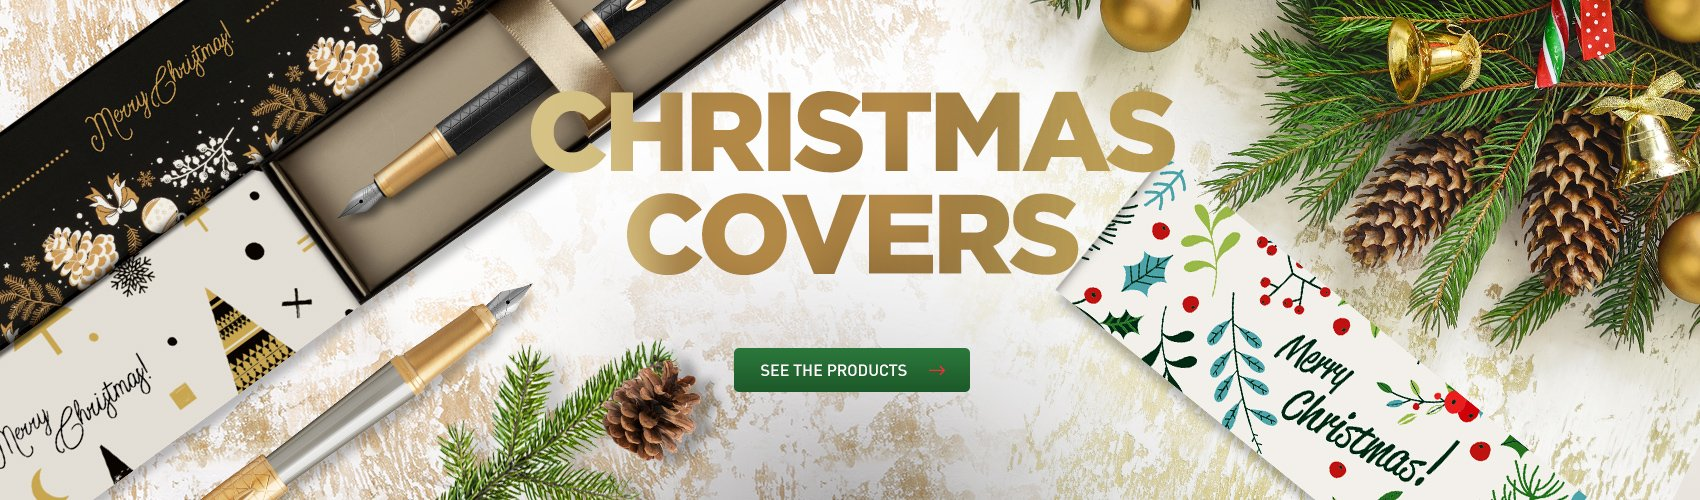 Parker covers for Christmas